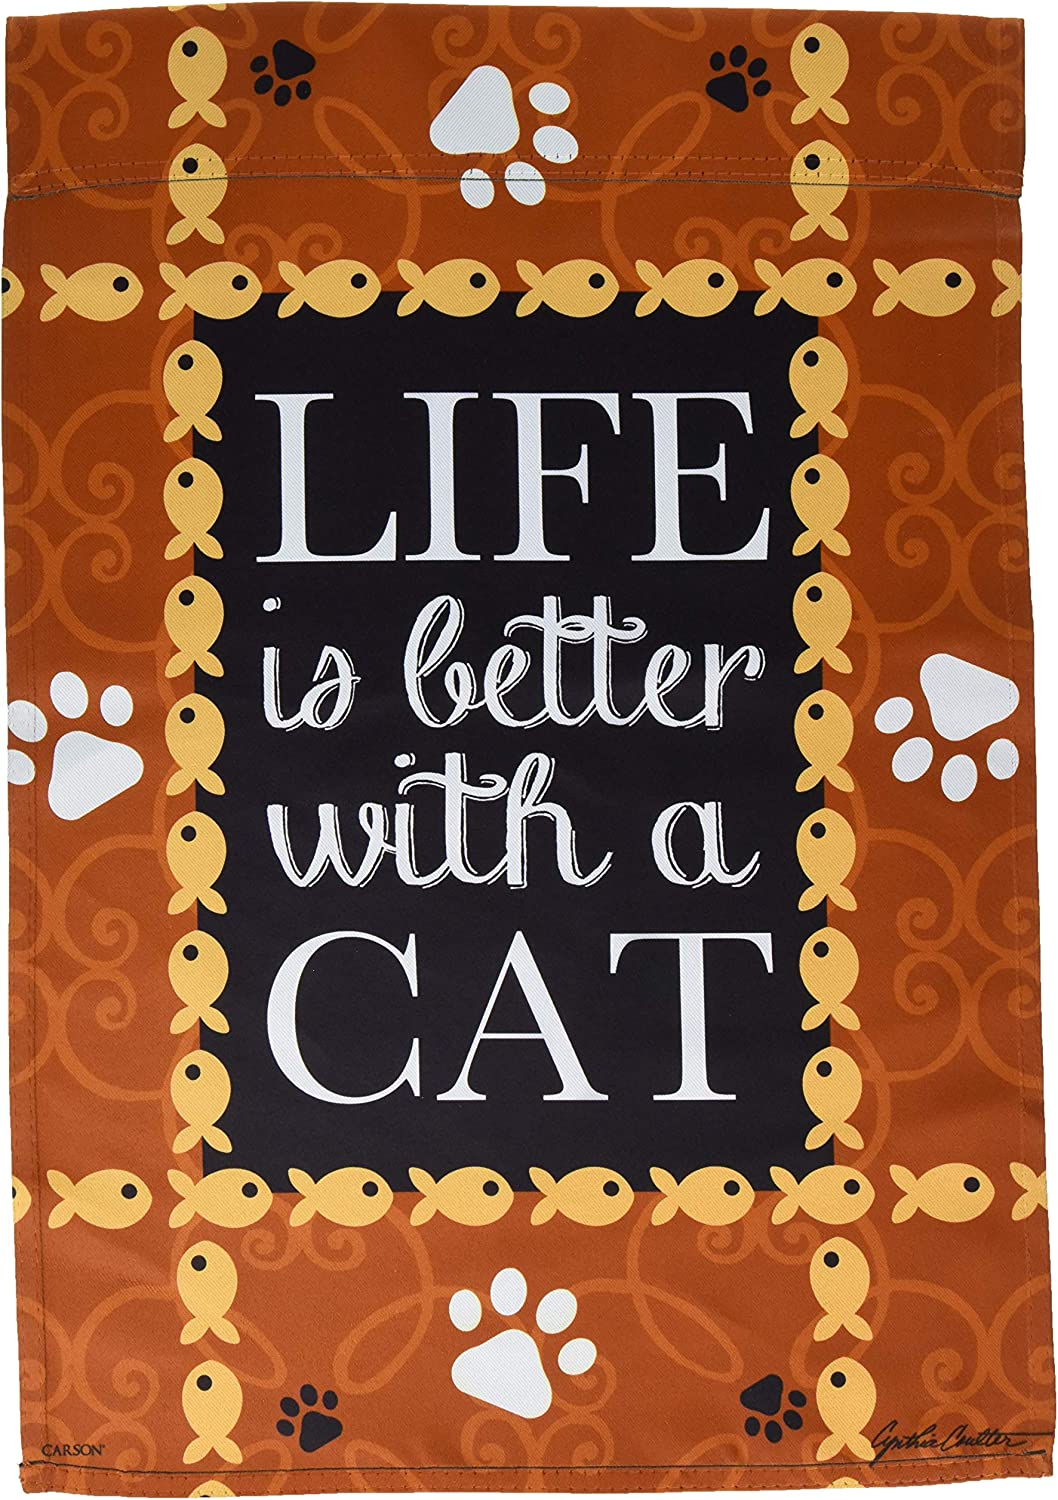 Carson Home Accents FlagTrends 46791 Life is Better with A Cat Classic Outdoor Garden Flag